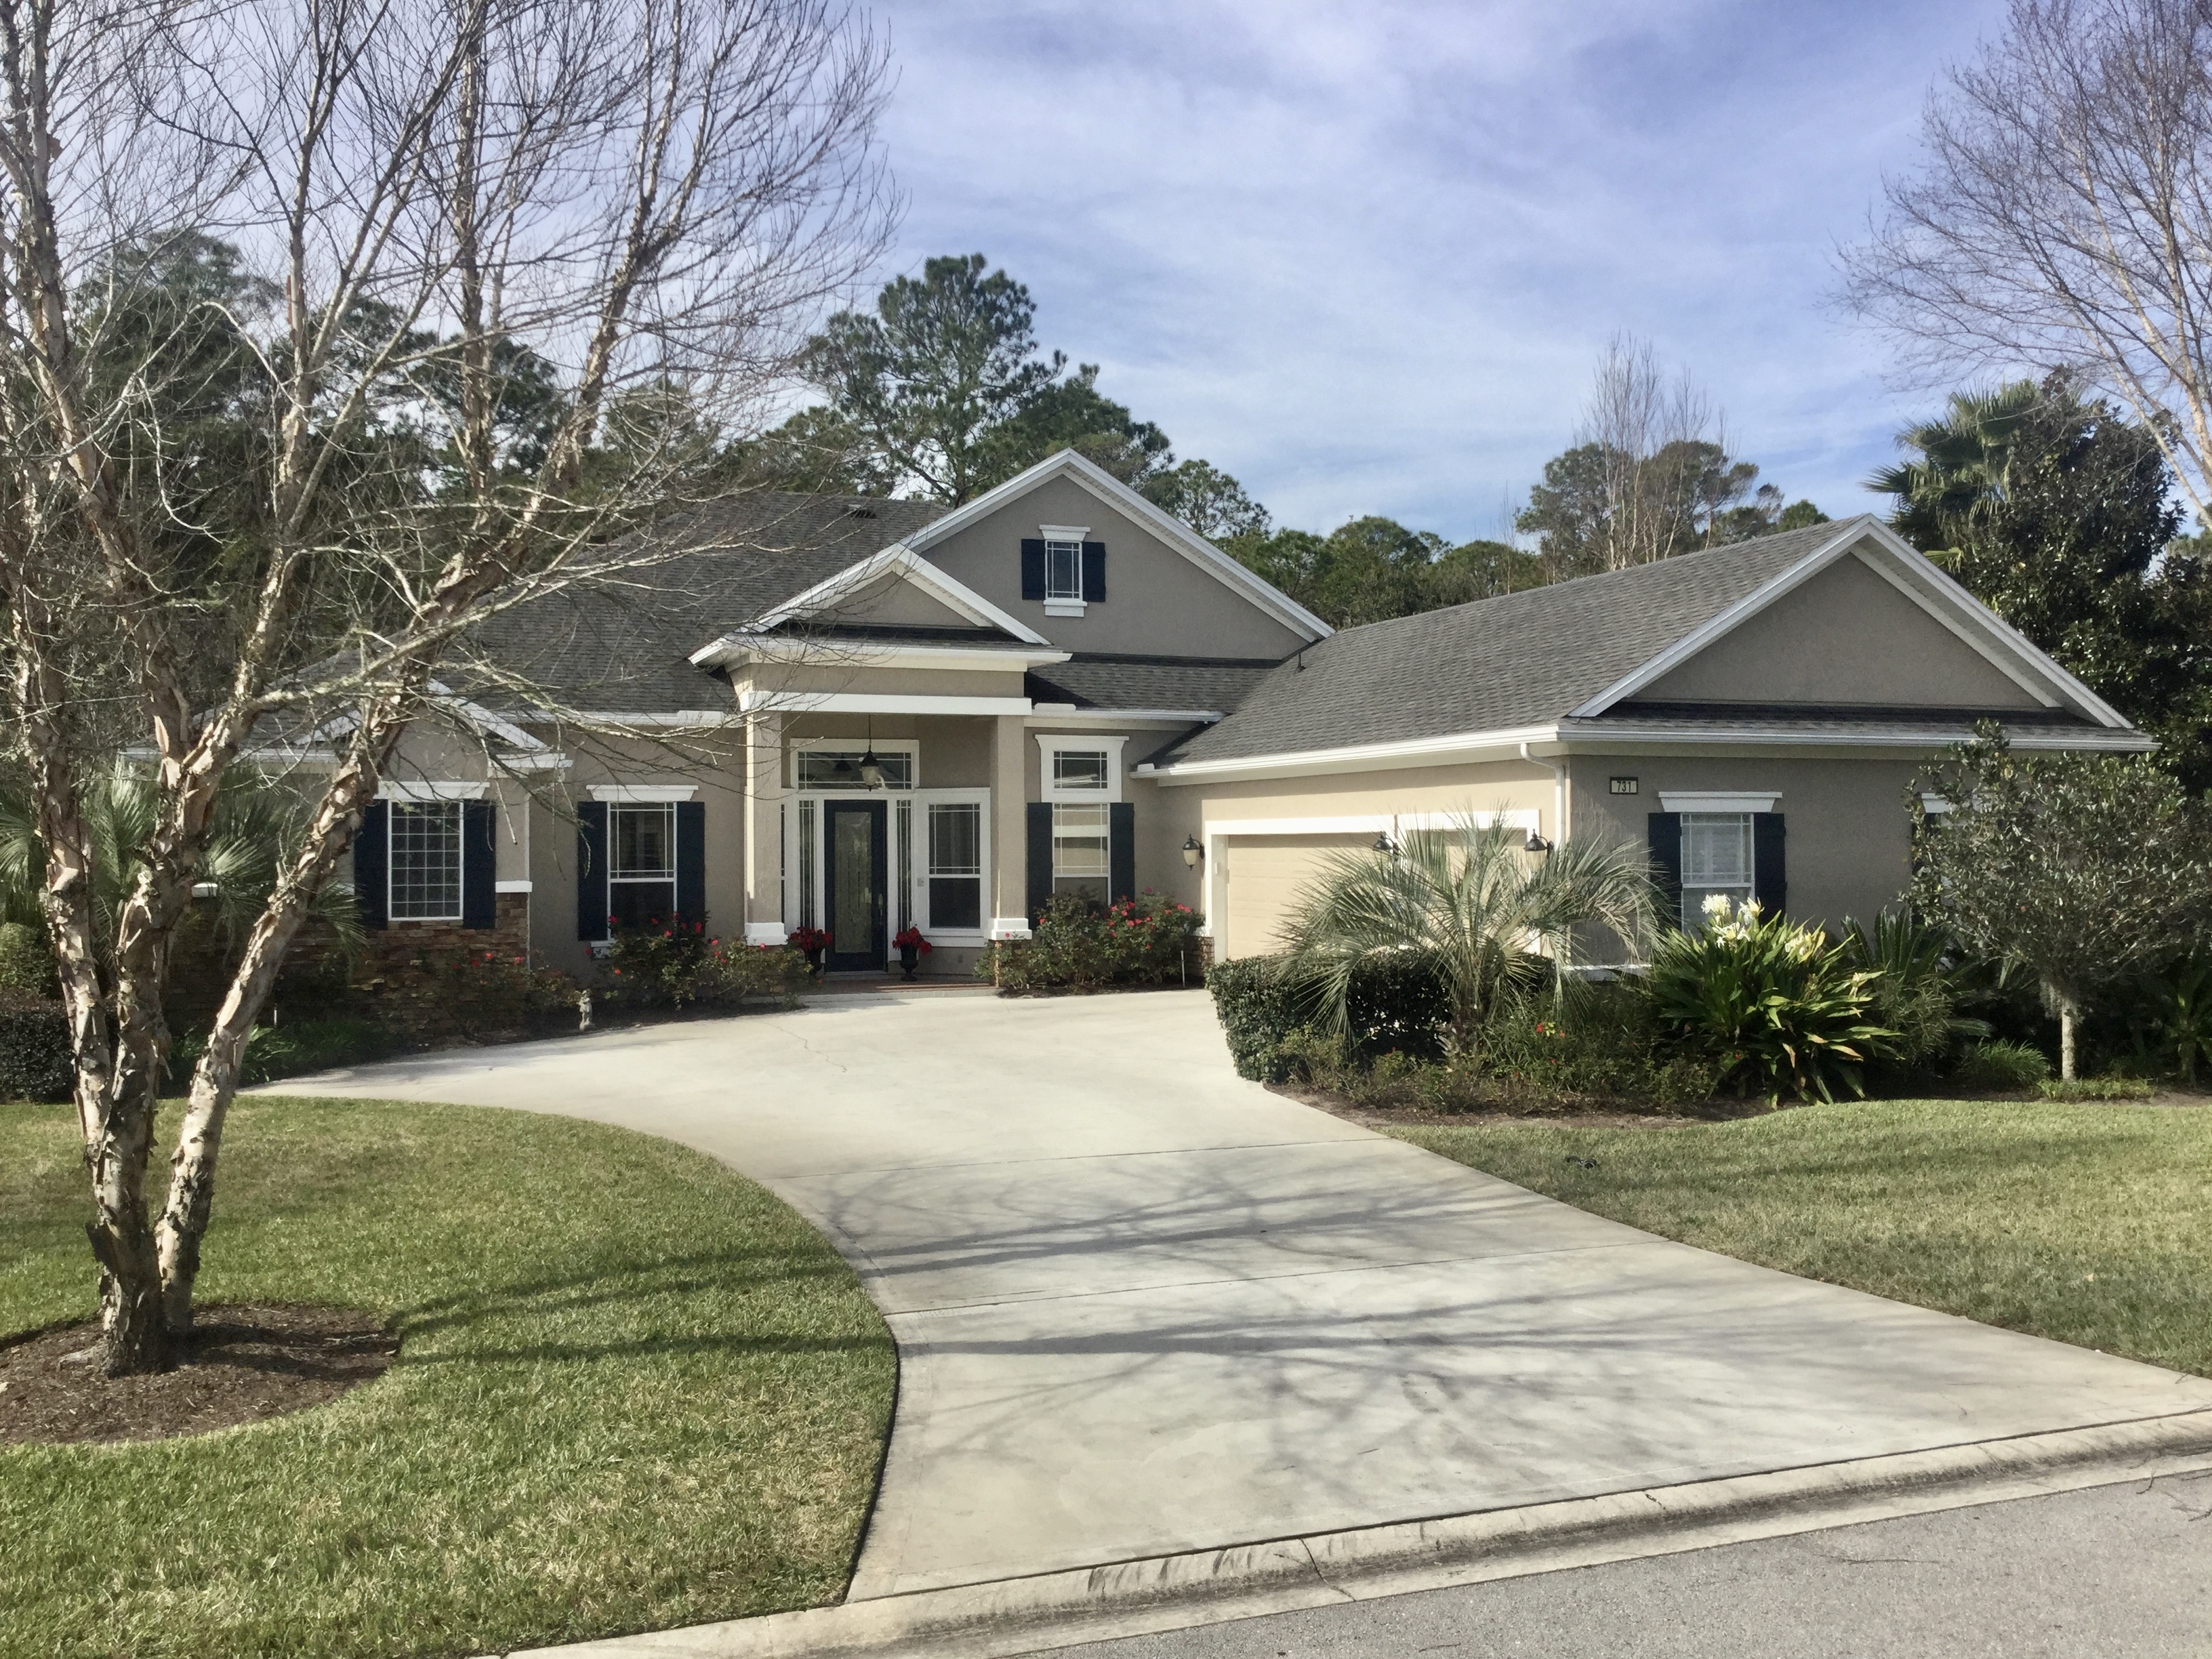 House Painting Service Ponte Vedra Beach